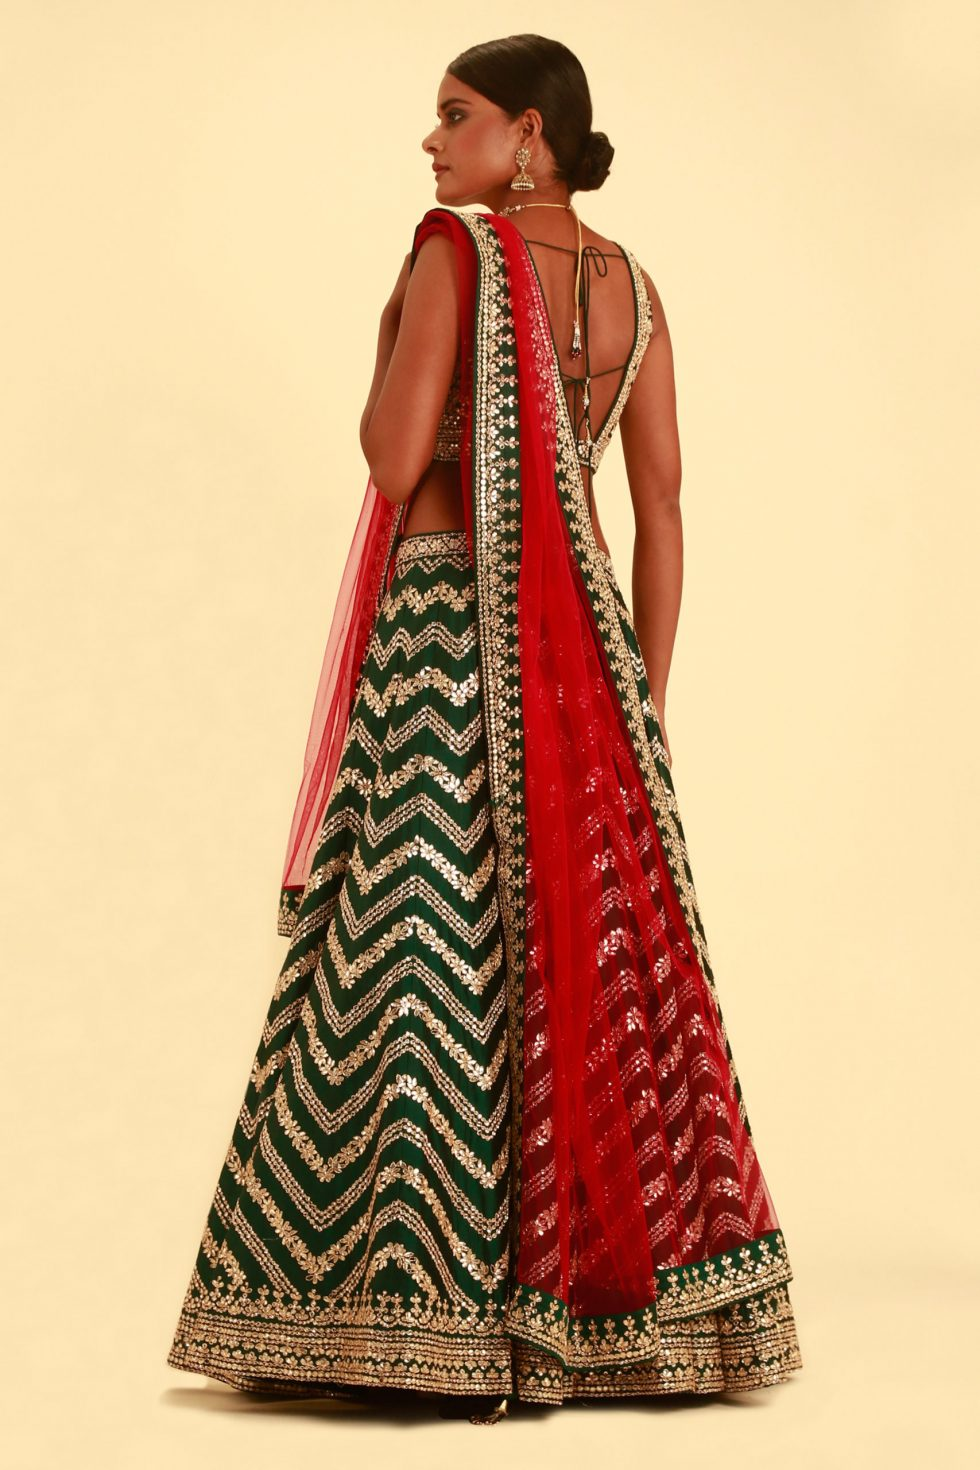 Moss green gota work lehenga set with a contrast red dupatta and gold embellishments